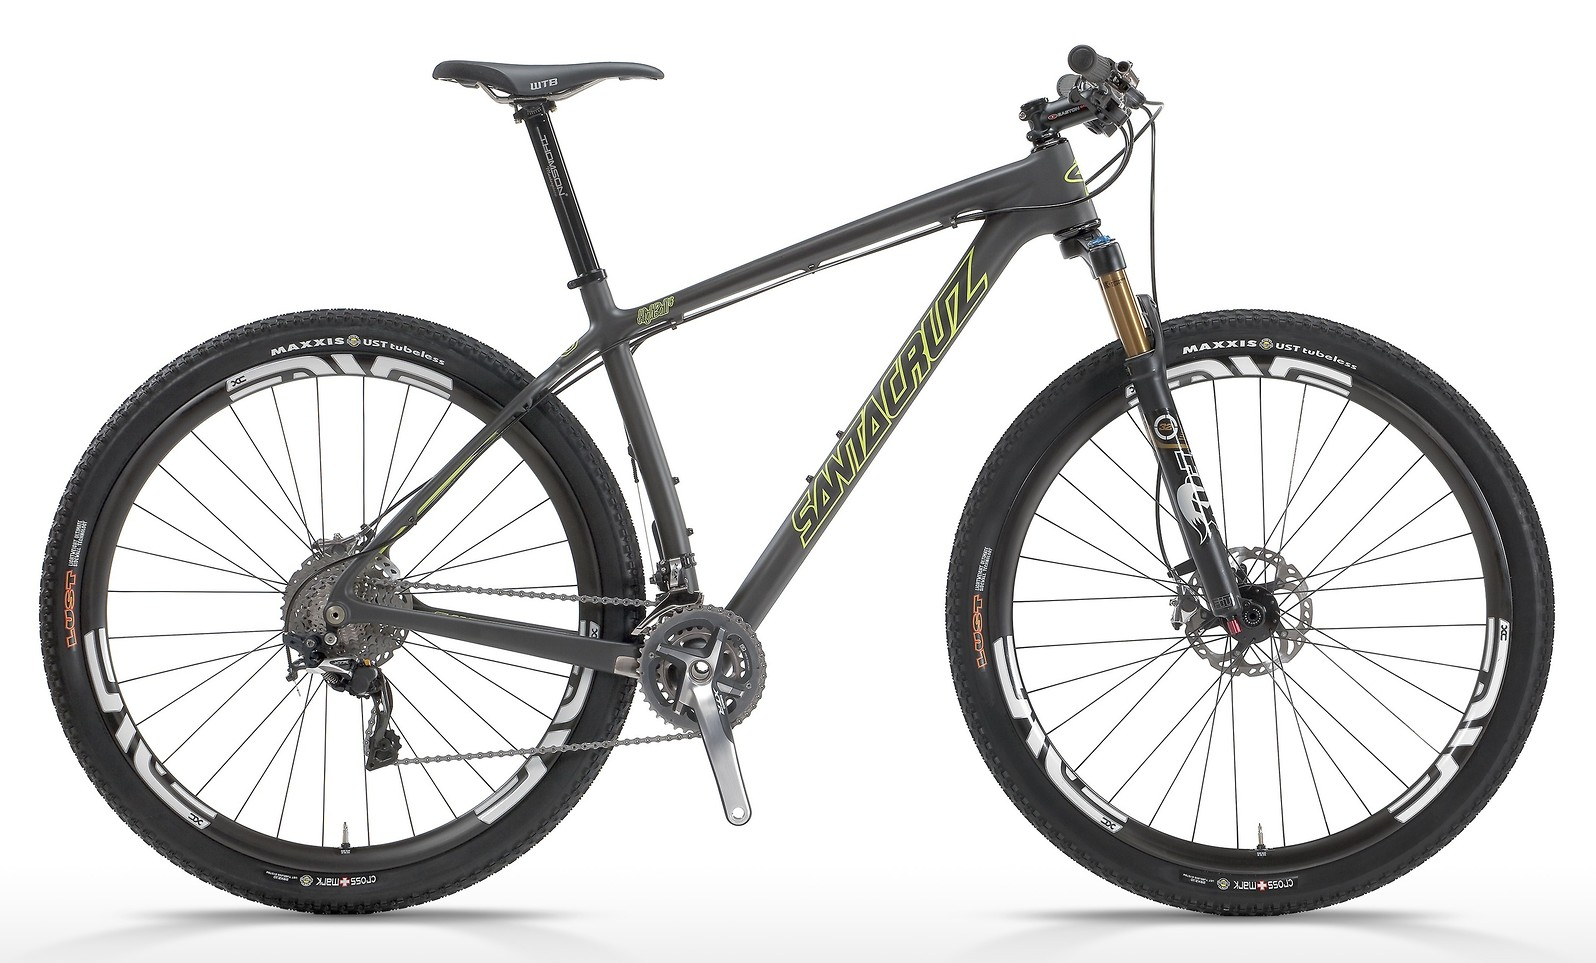 2014 Santa Cruz Highball Carbon XX1 XC 29 Bike 2013 HIGHBALL Ccatalogflat